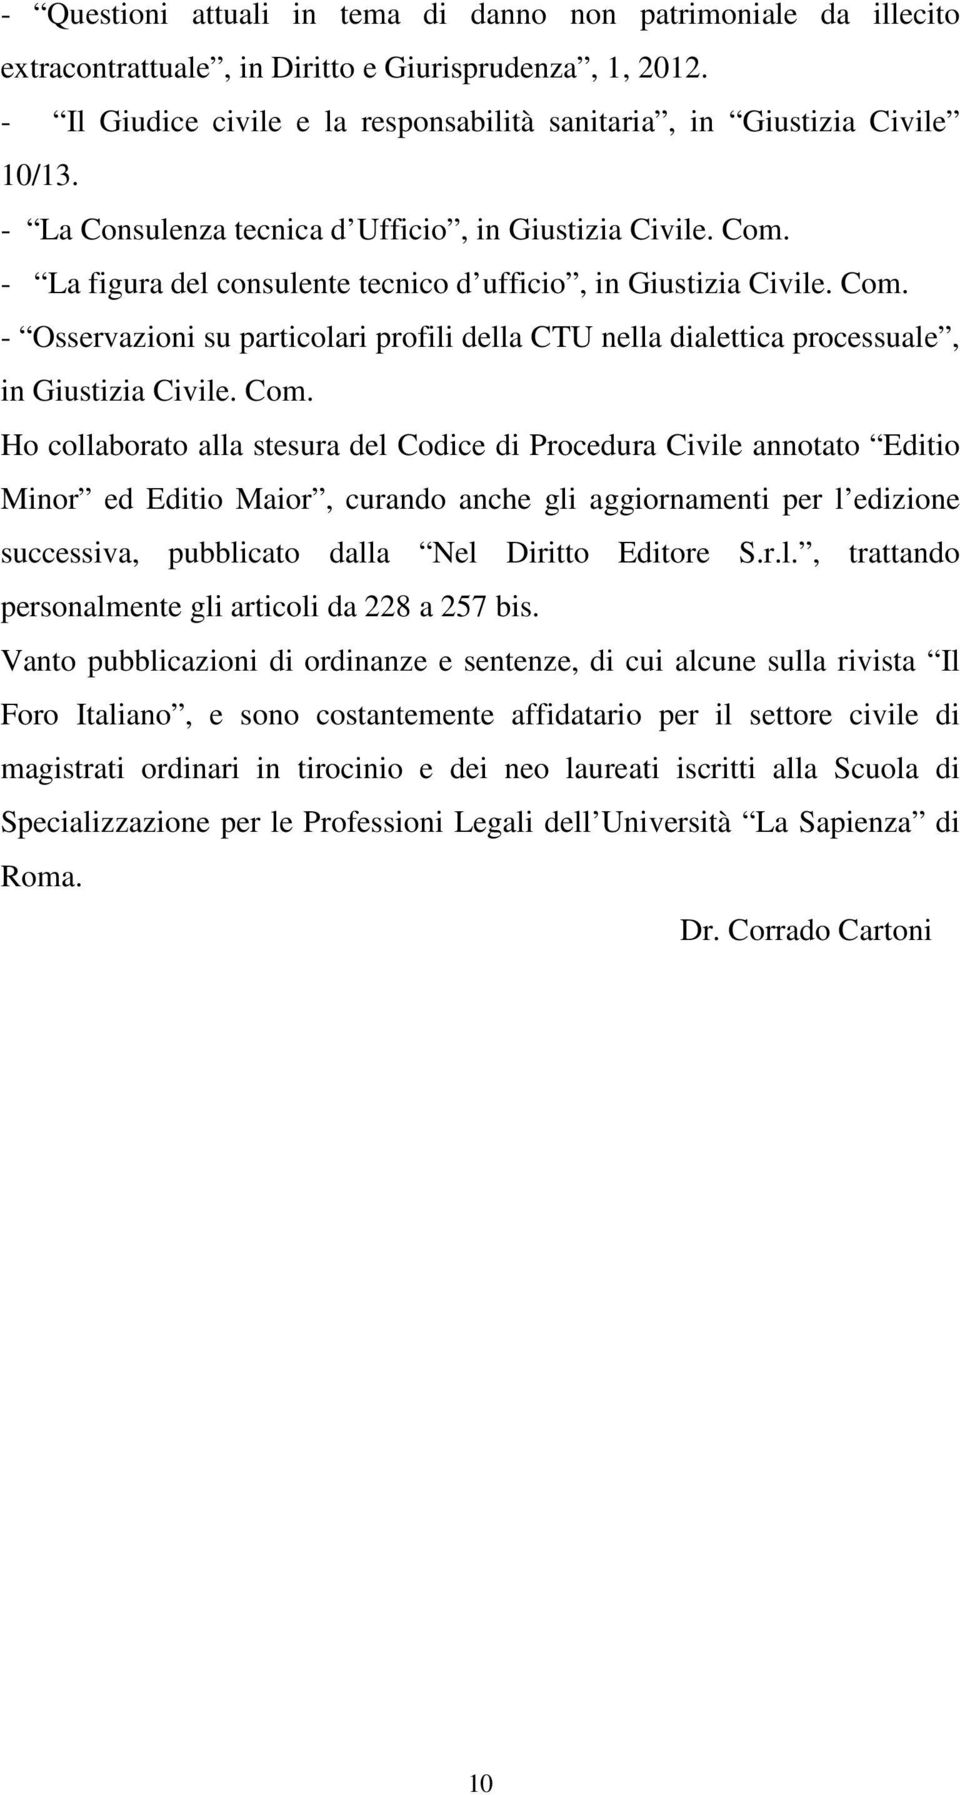 Com. Ho collaborato alla stesura del Codice di Procedura Civile annotato Editio Minor ed Editio Maior, curando anche gli aggiornamenti per l edizione successiva, pubblicato dalla Nel Diritto Editore